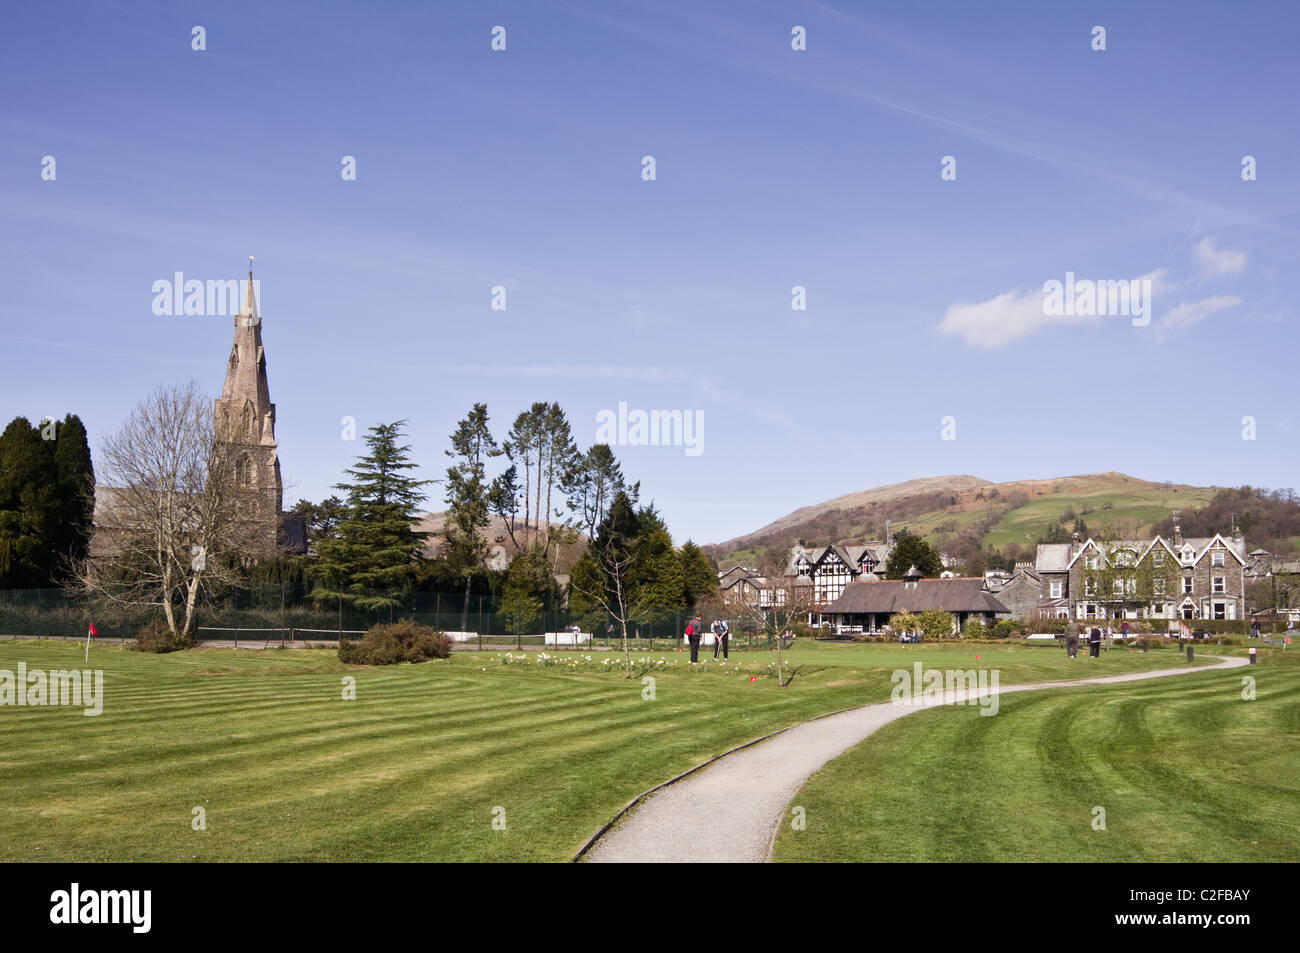 Ambleside, Cumbria, England, UK. View of Cumbrian town and St Mary's parish church from across the park putting - Stock Image